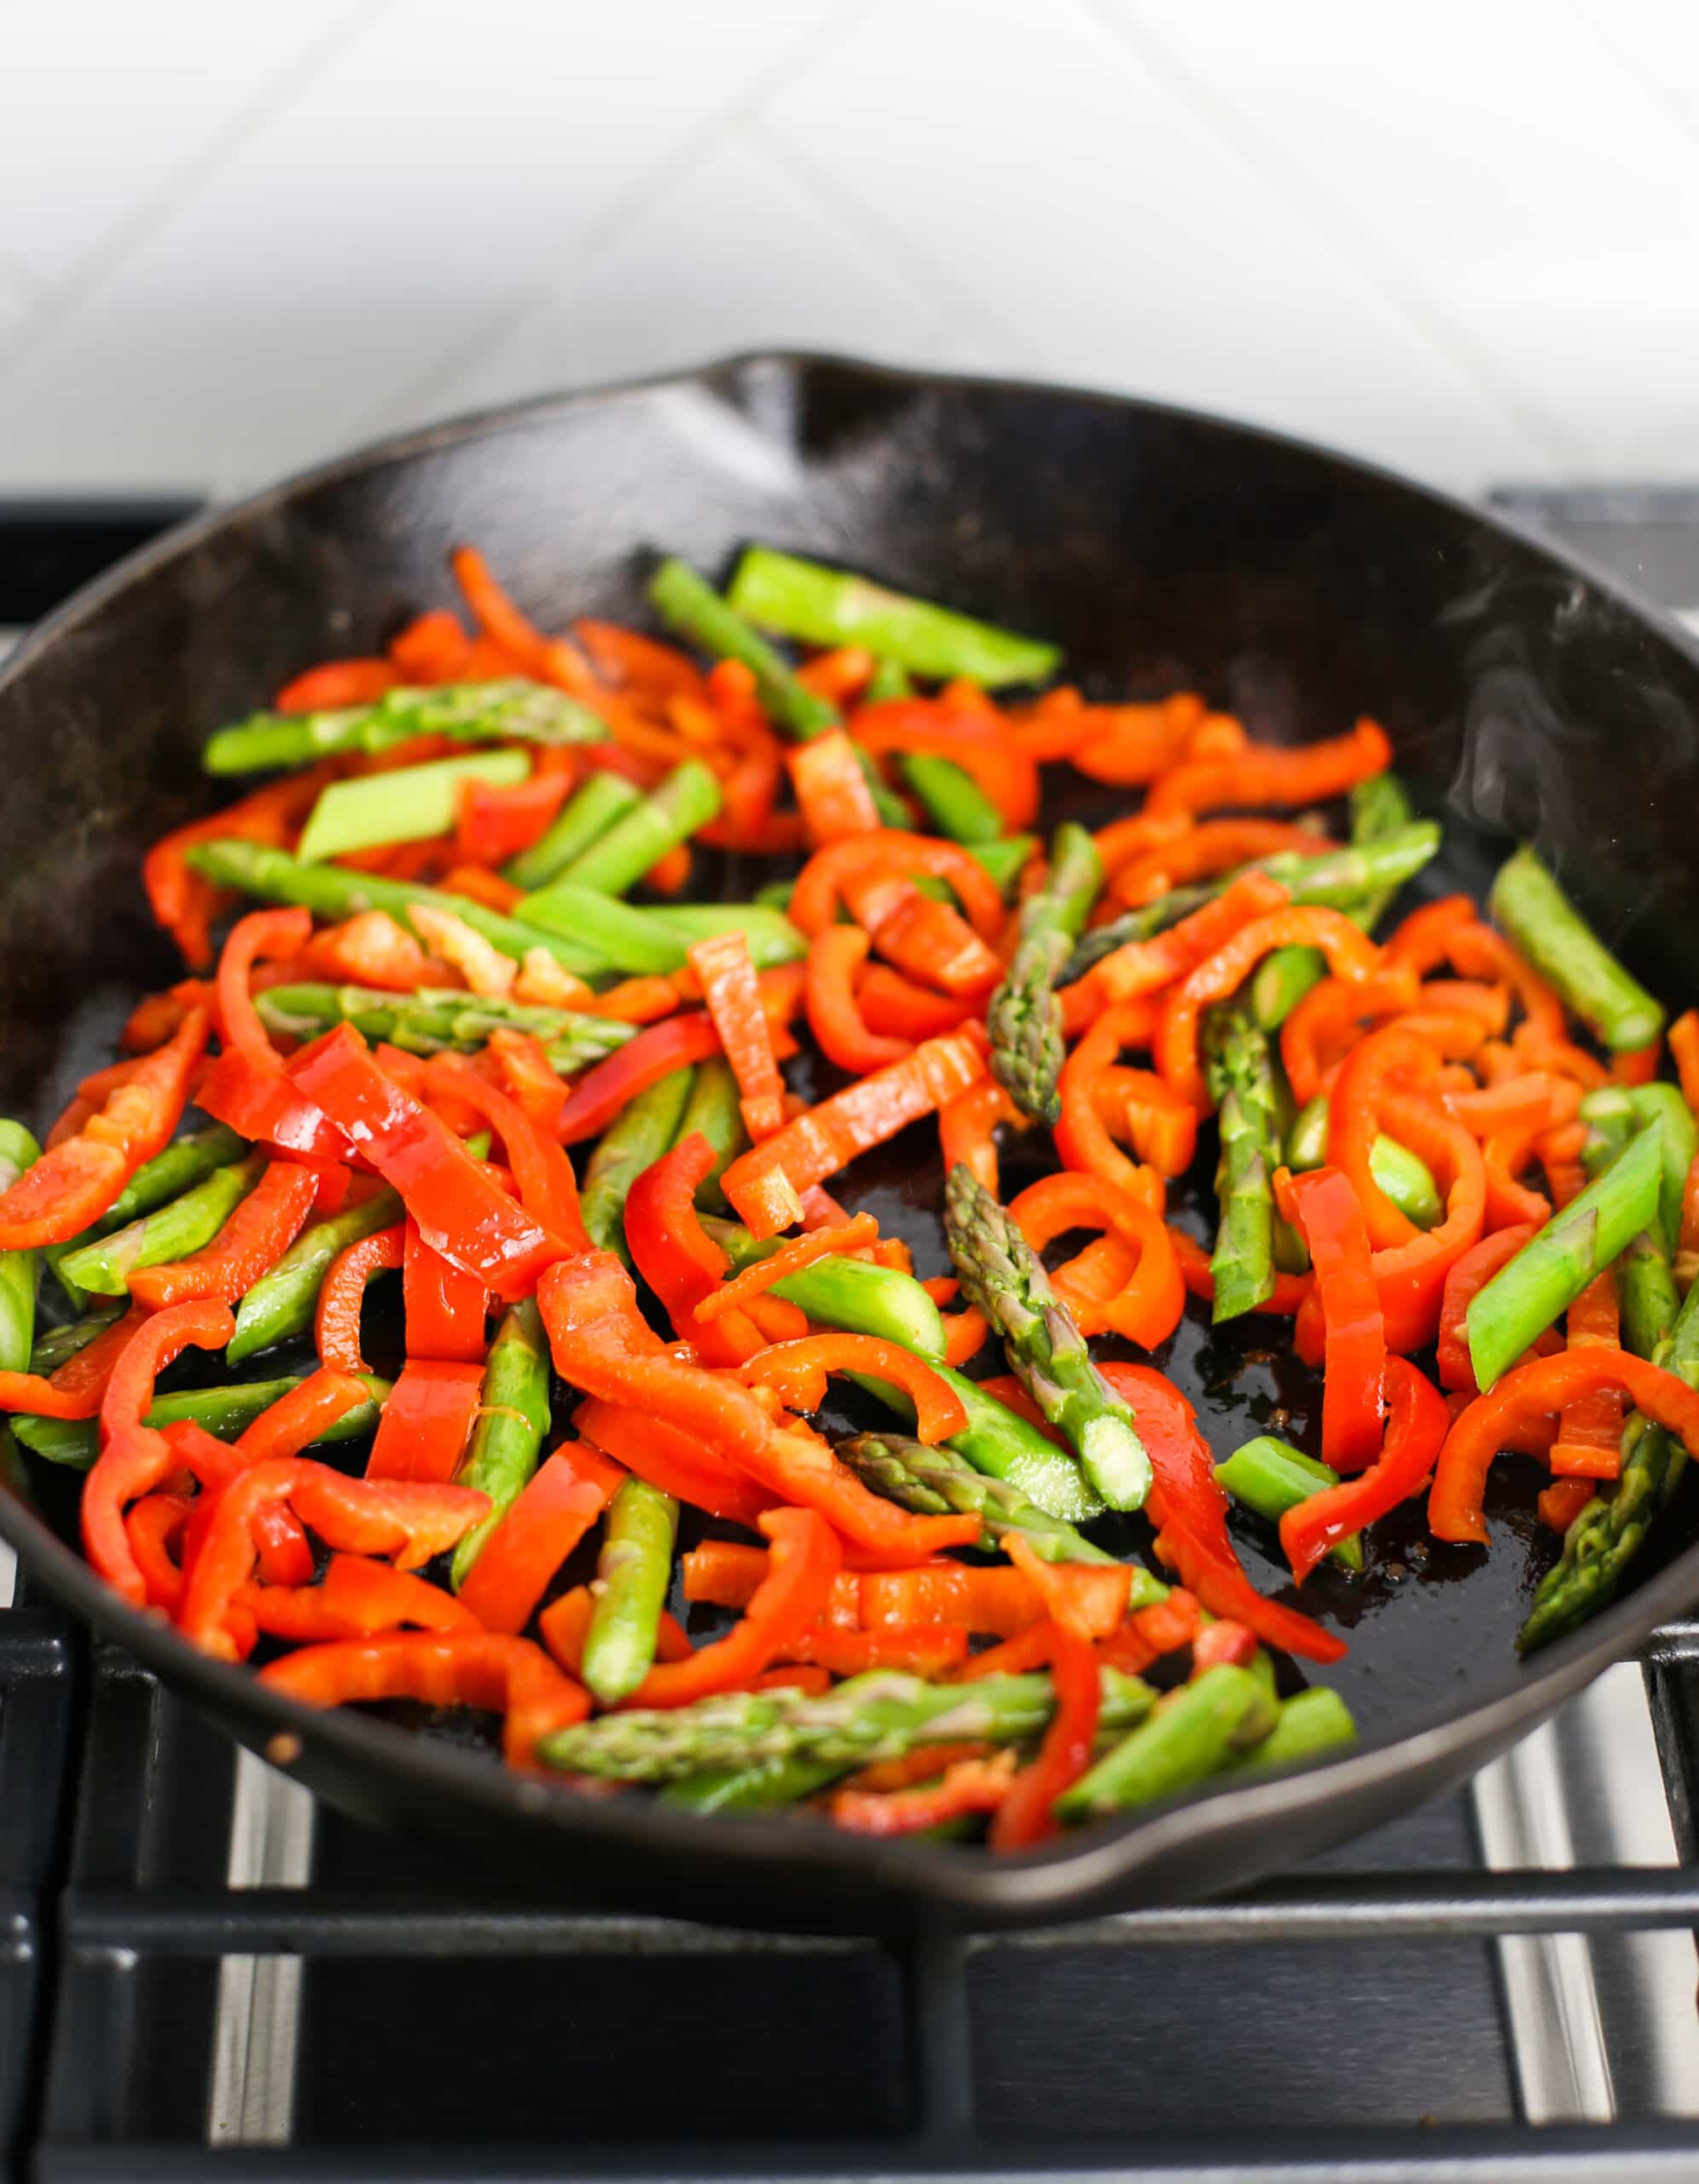 Sautéed chopped asparagus and red bell pepper in a cast iron skillet.